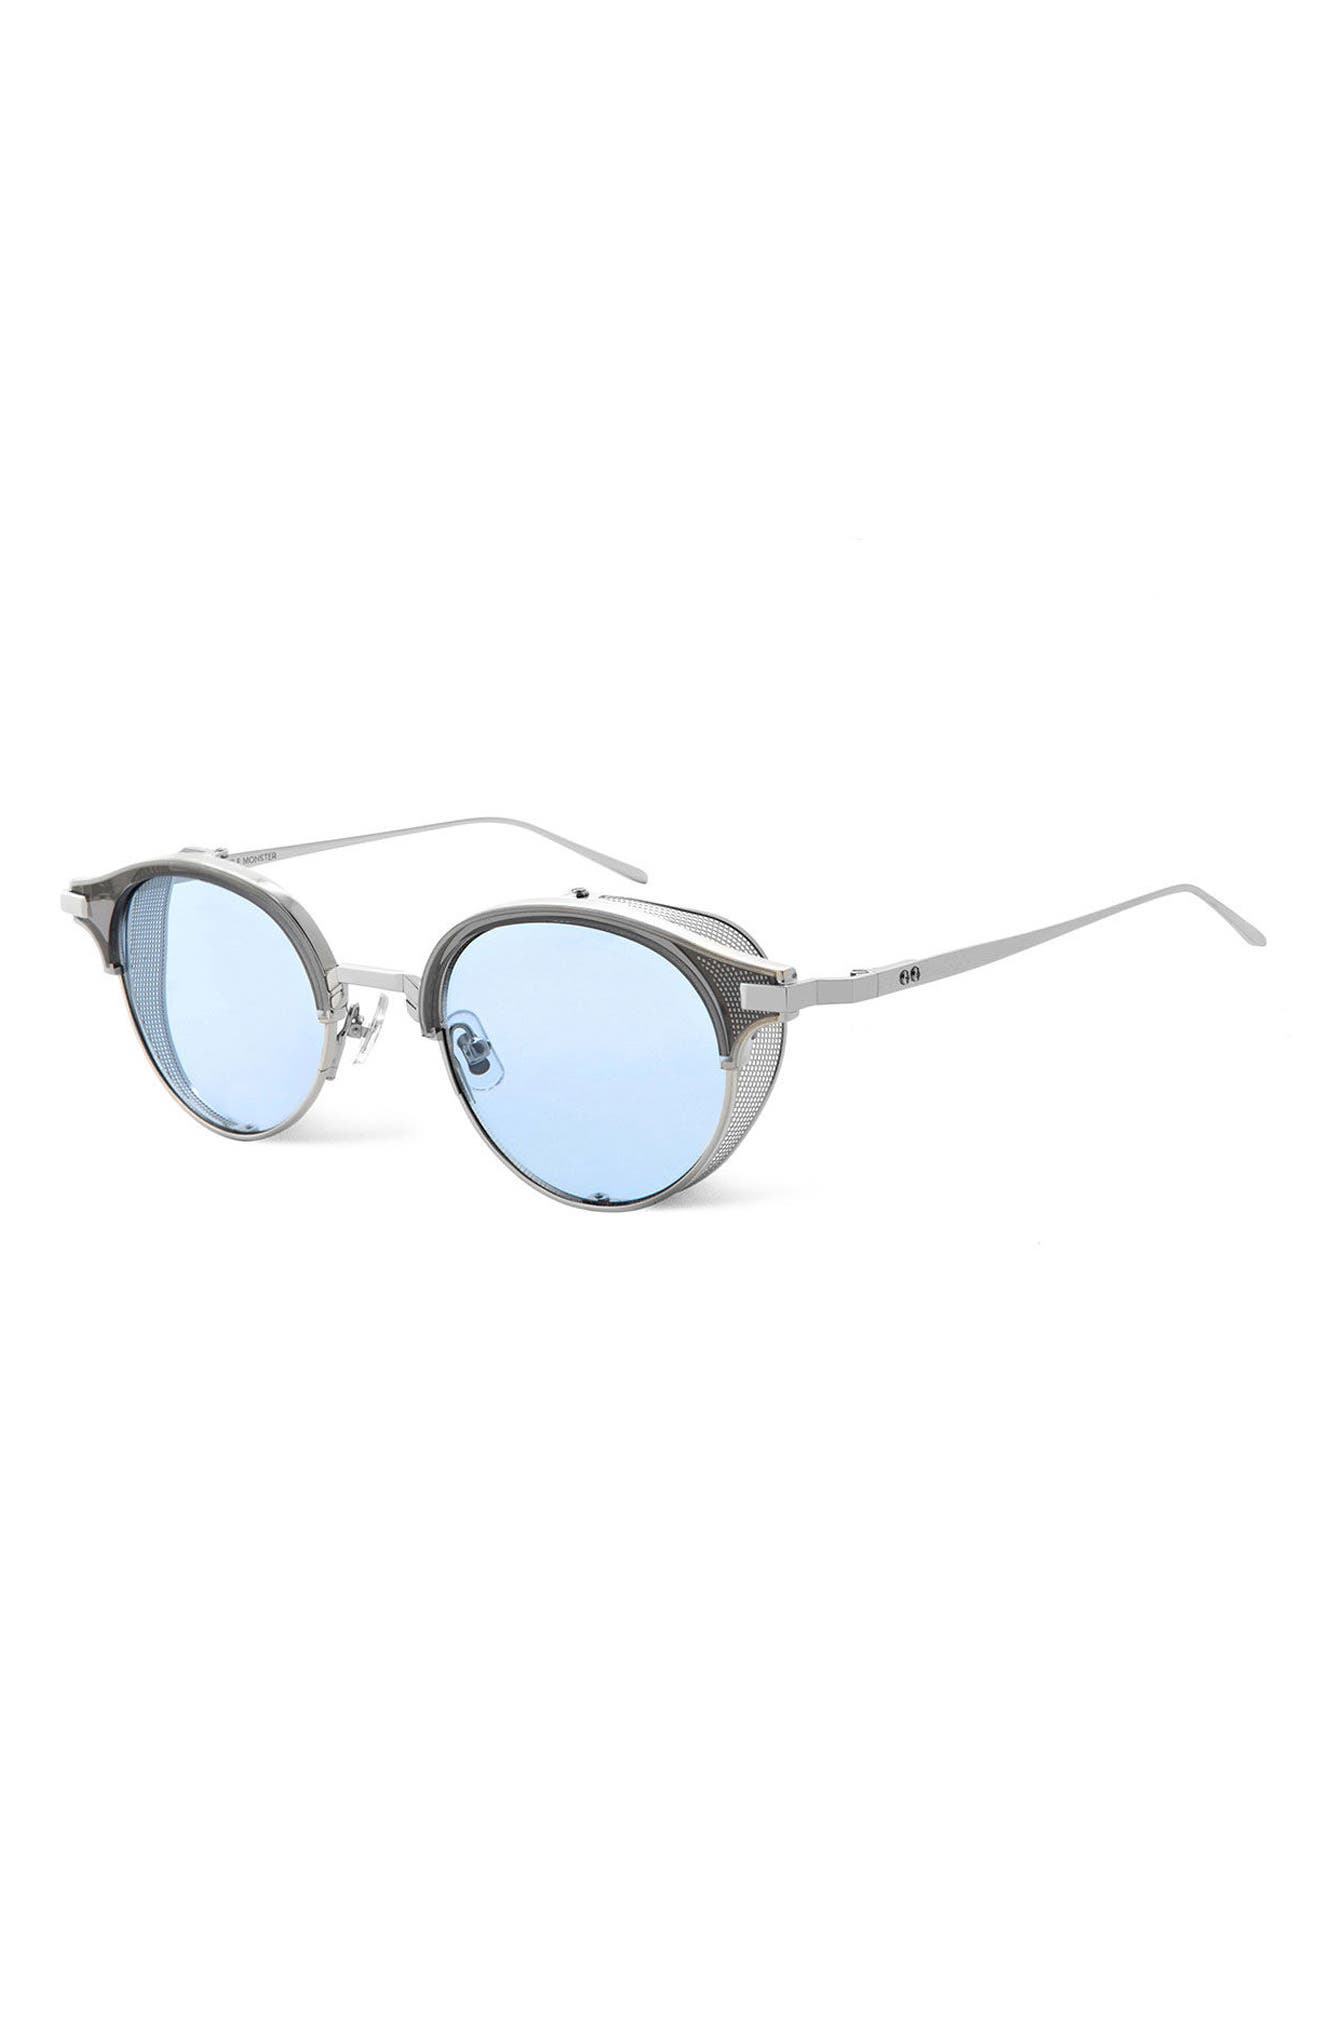 GENTLE MONSTER,                             Double Erok 50mm Cat Eye Sunglasses,                             Alternate thumbnail 3, color,                             040